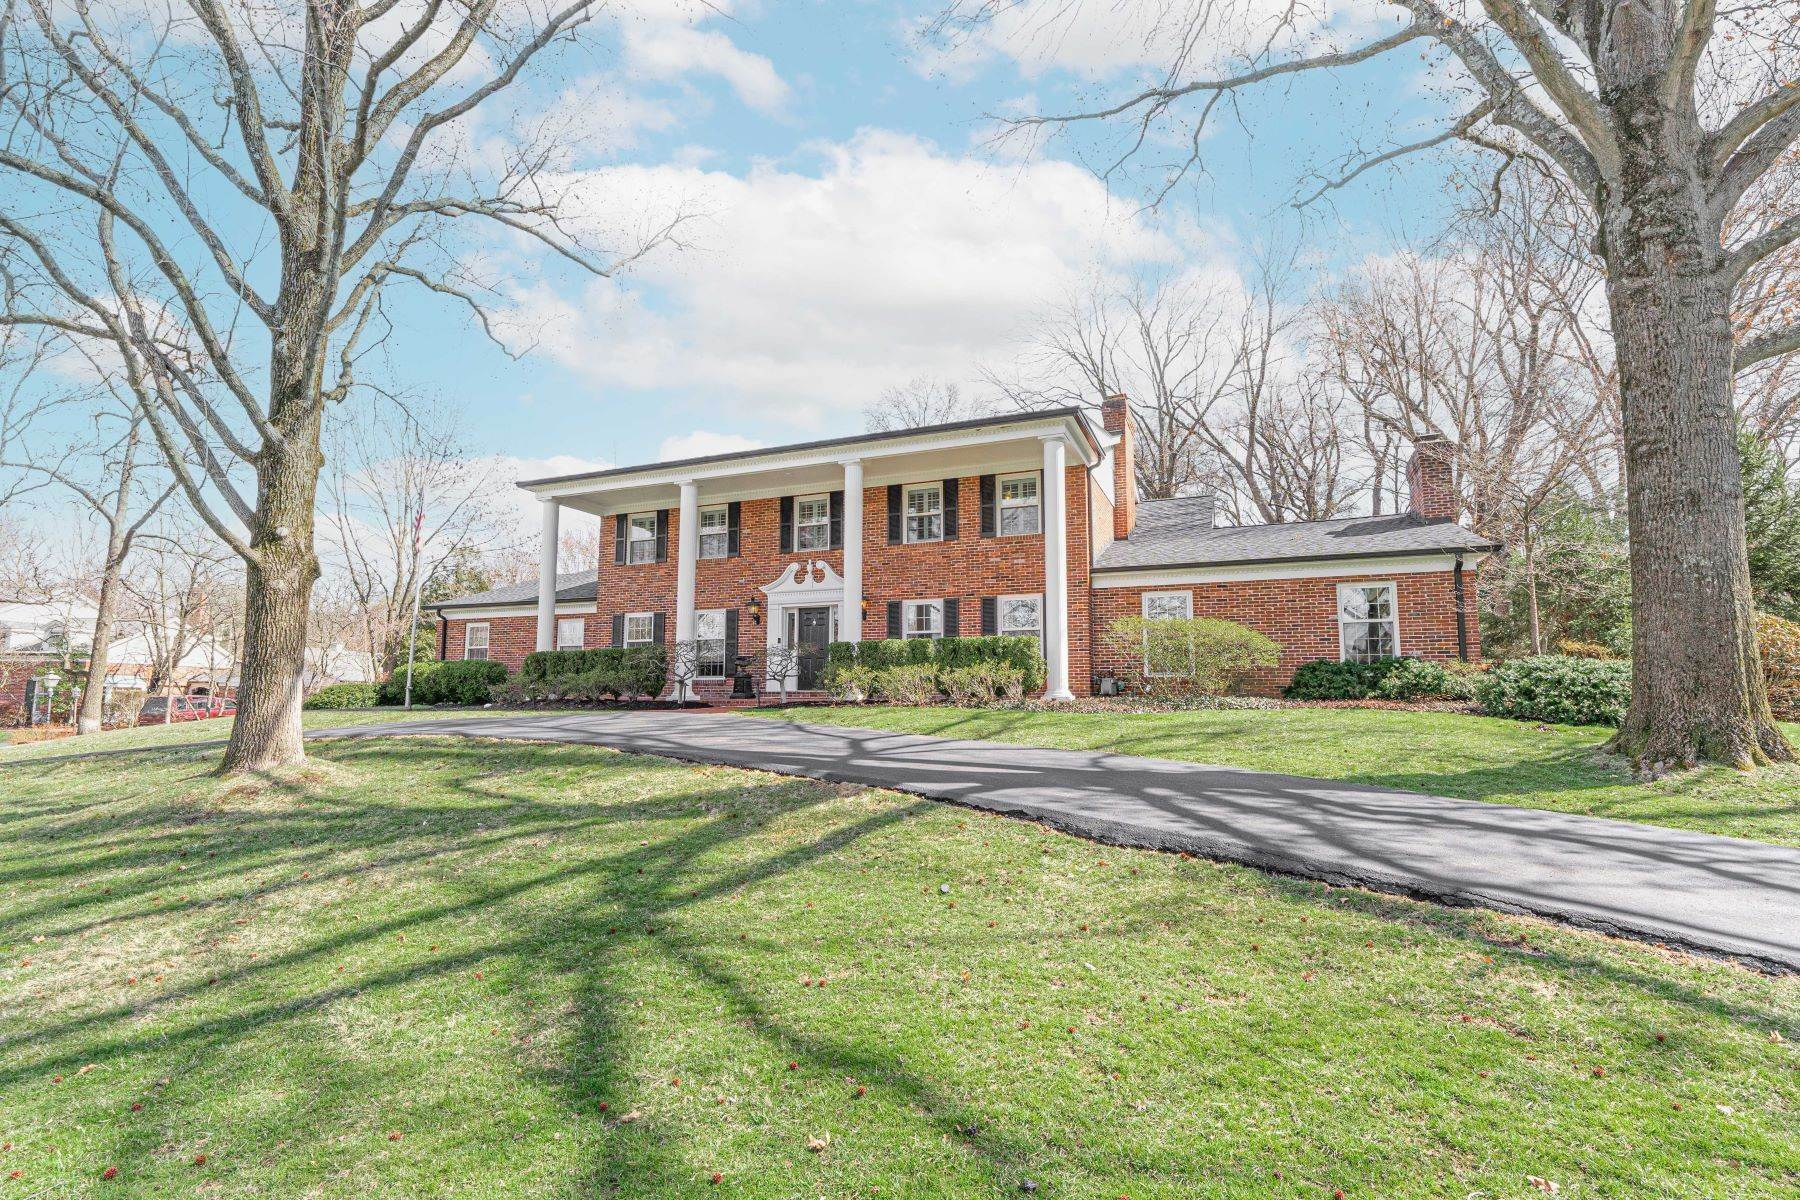 Single Family Homes for Sale at Stately elegance with modern updates in Ladue 10 Gouvenor Lane Ladue, Missouri 63124 United States